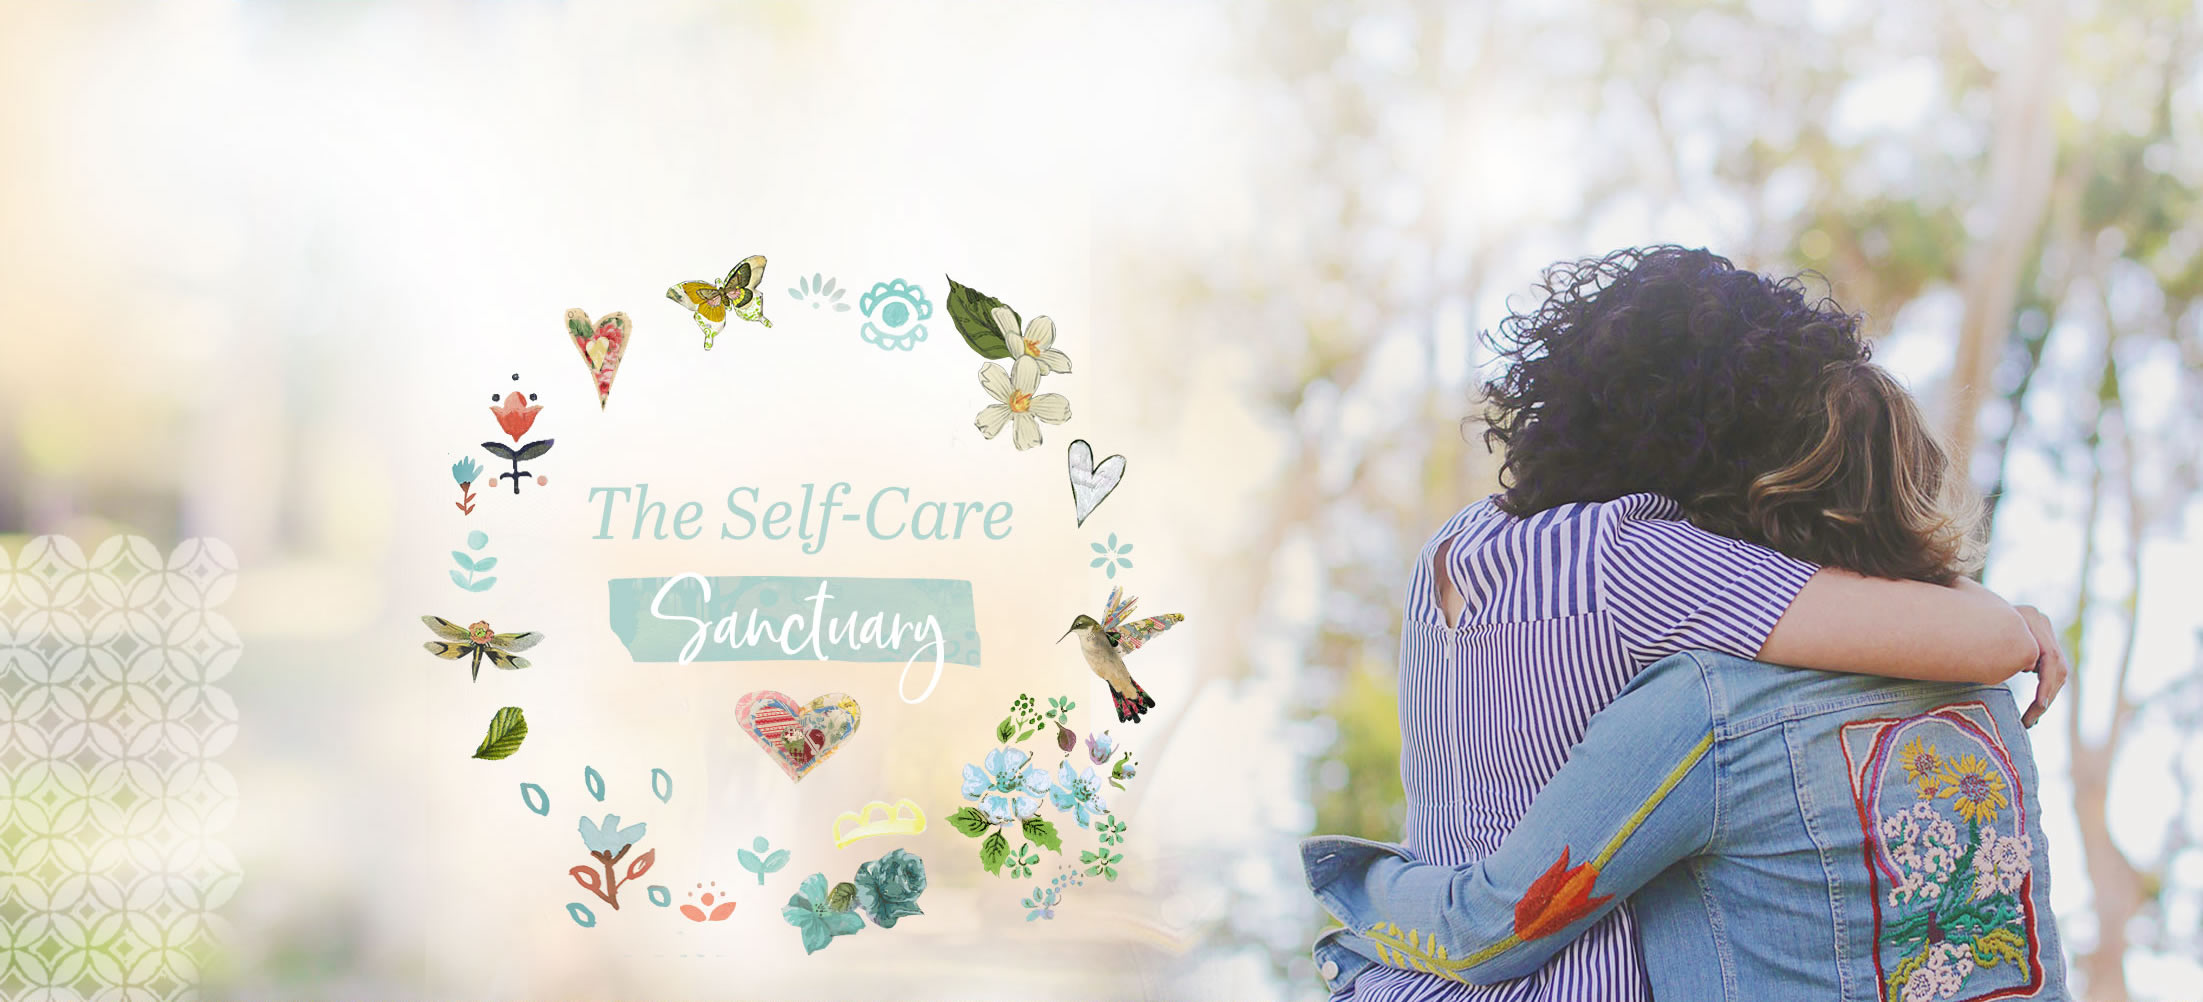 Welcome to your The Self Care Sanctuary